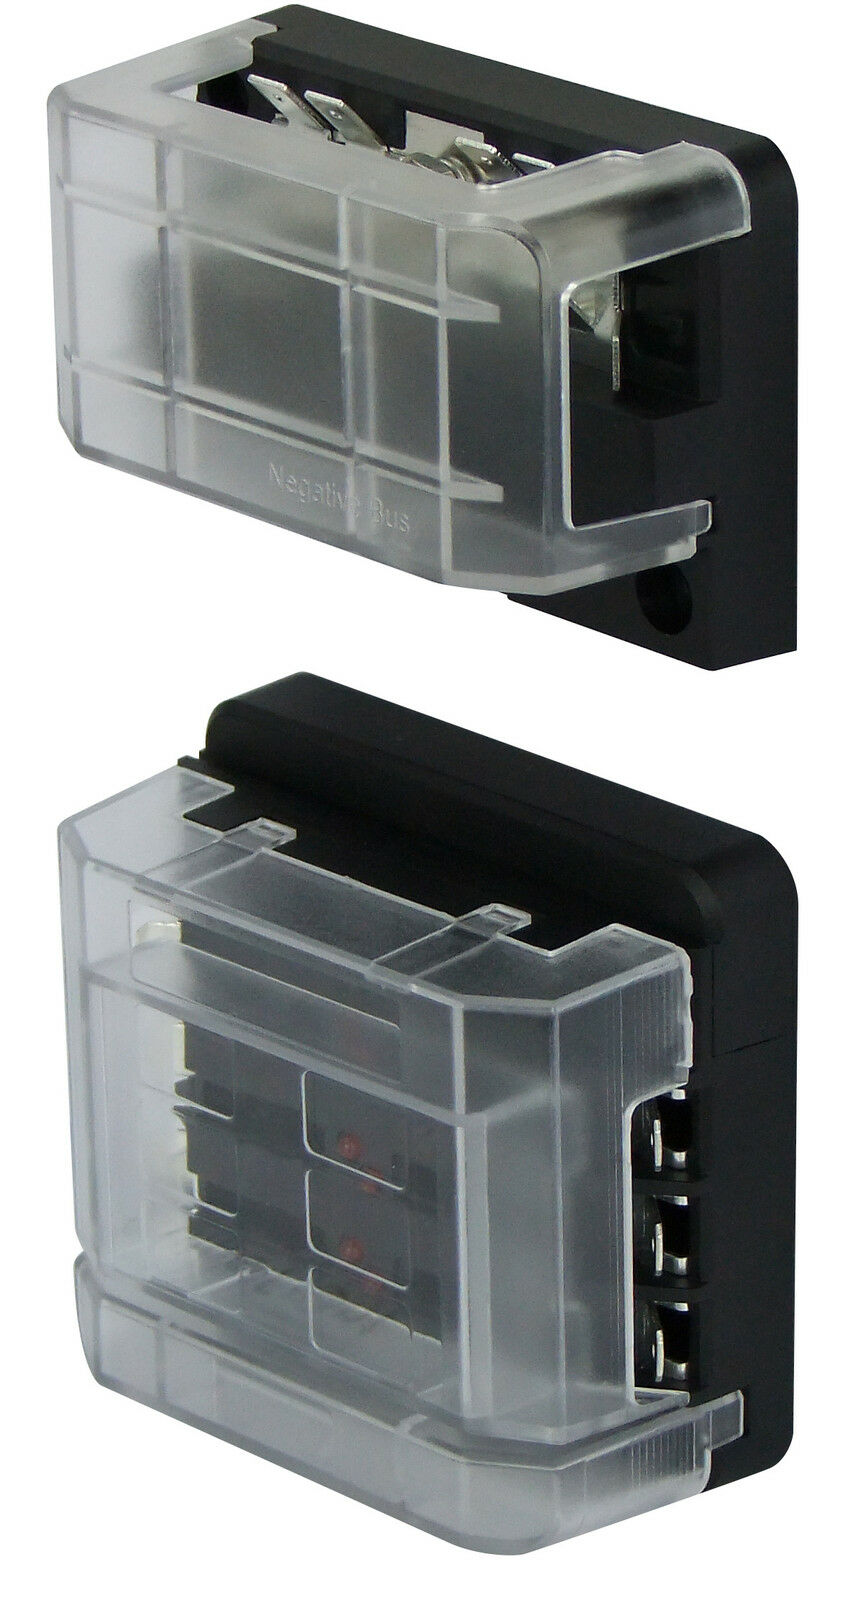 Buss Bar 12 Way With 6 Circuit Fuse Box Modular Kit 12v